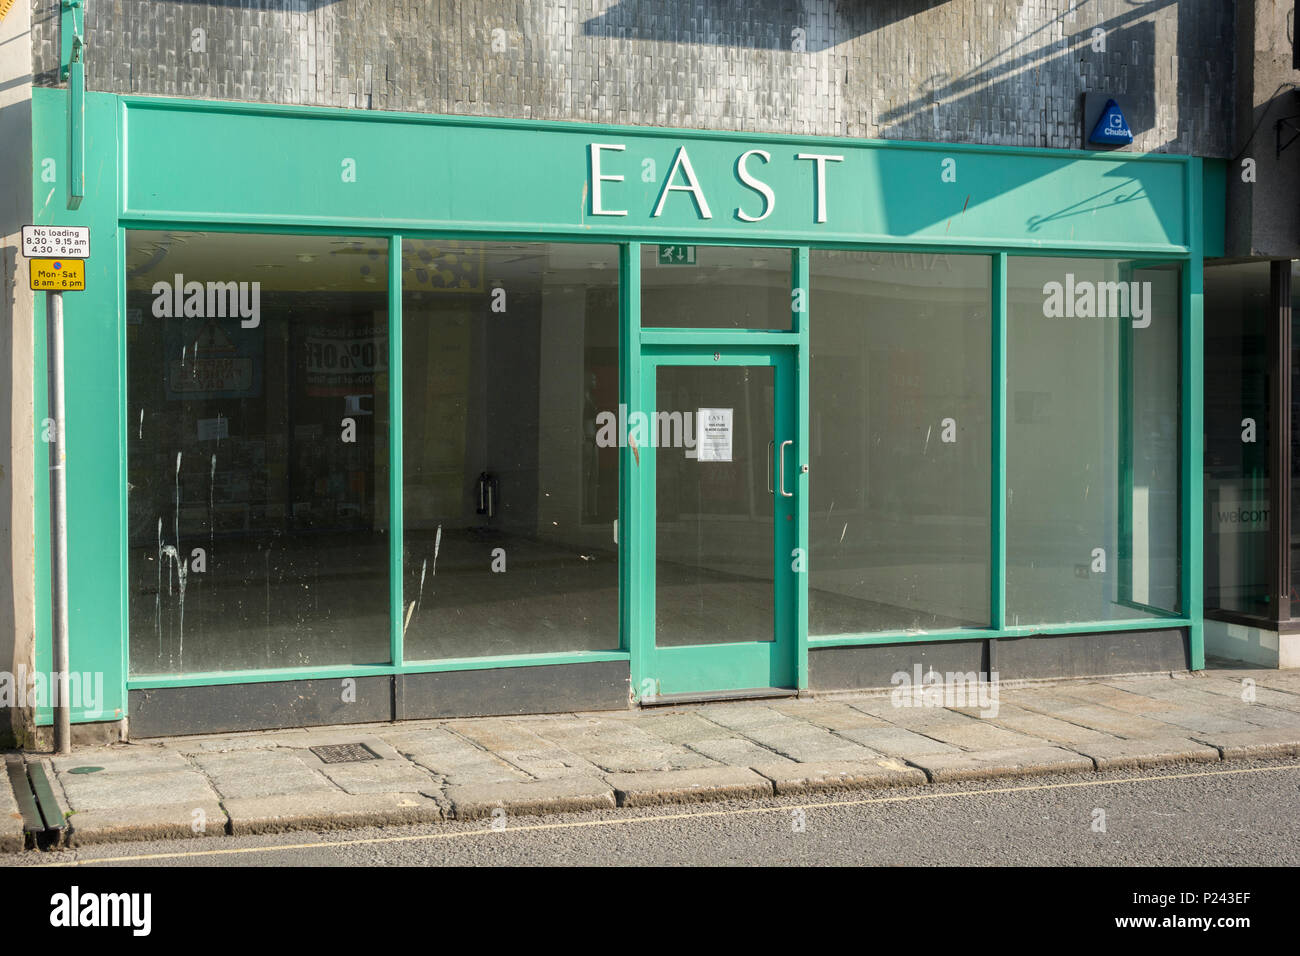 Empty vacant shop front in Truro, Cornwall. Metaphor for Death of the High Street, closed down shops, recession, high street closures, vacant shops. - Stock Image